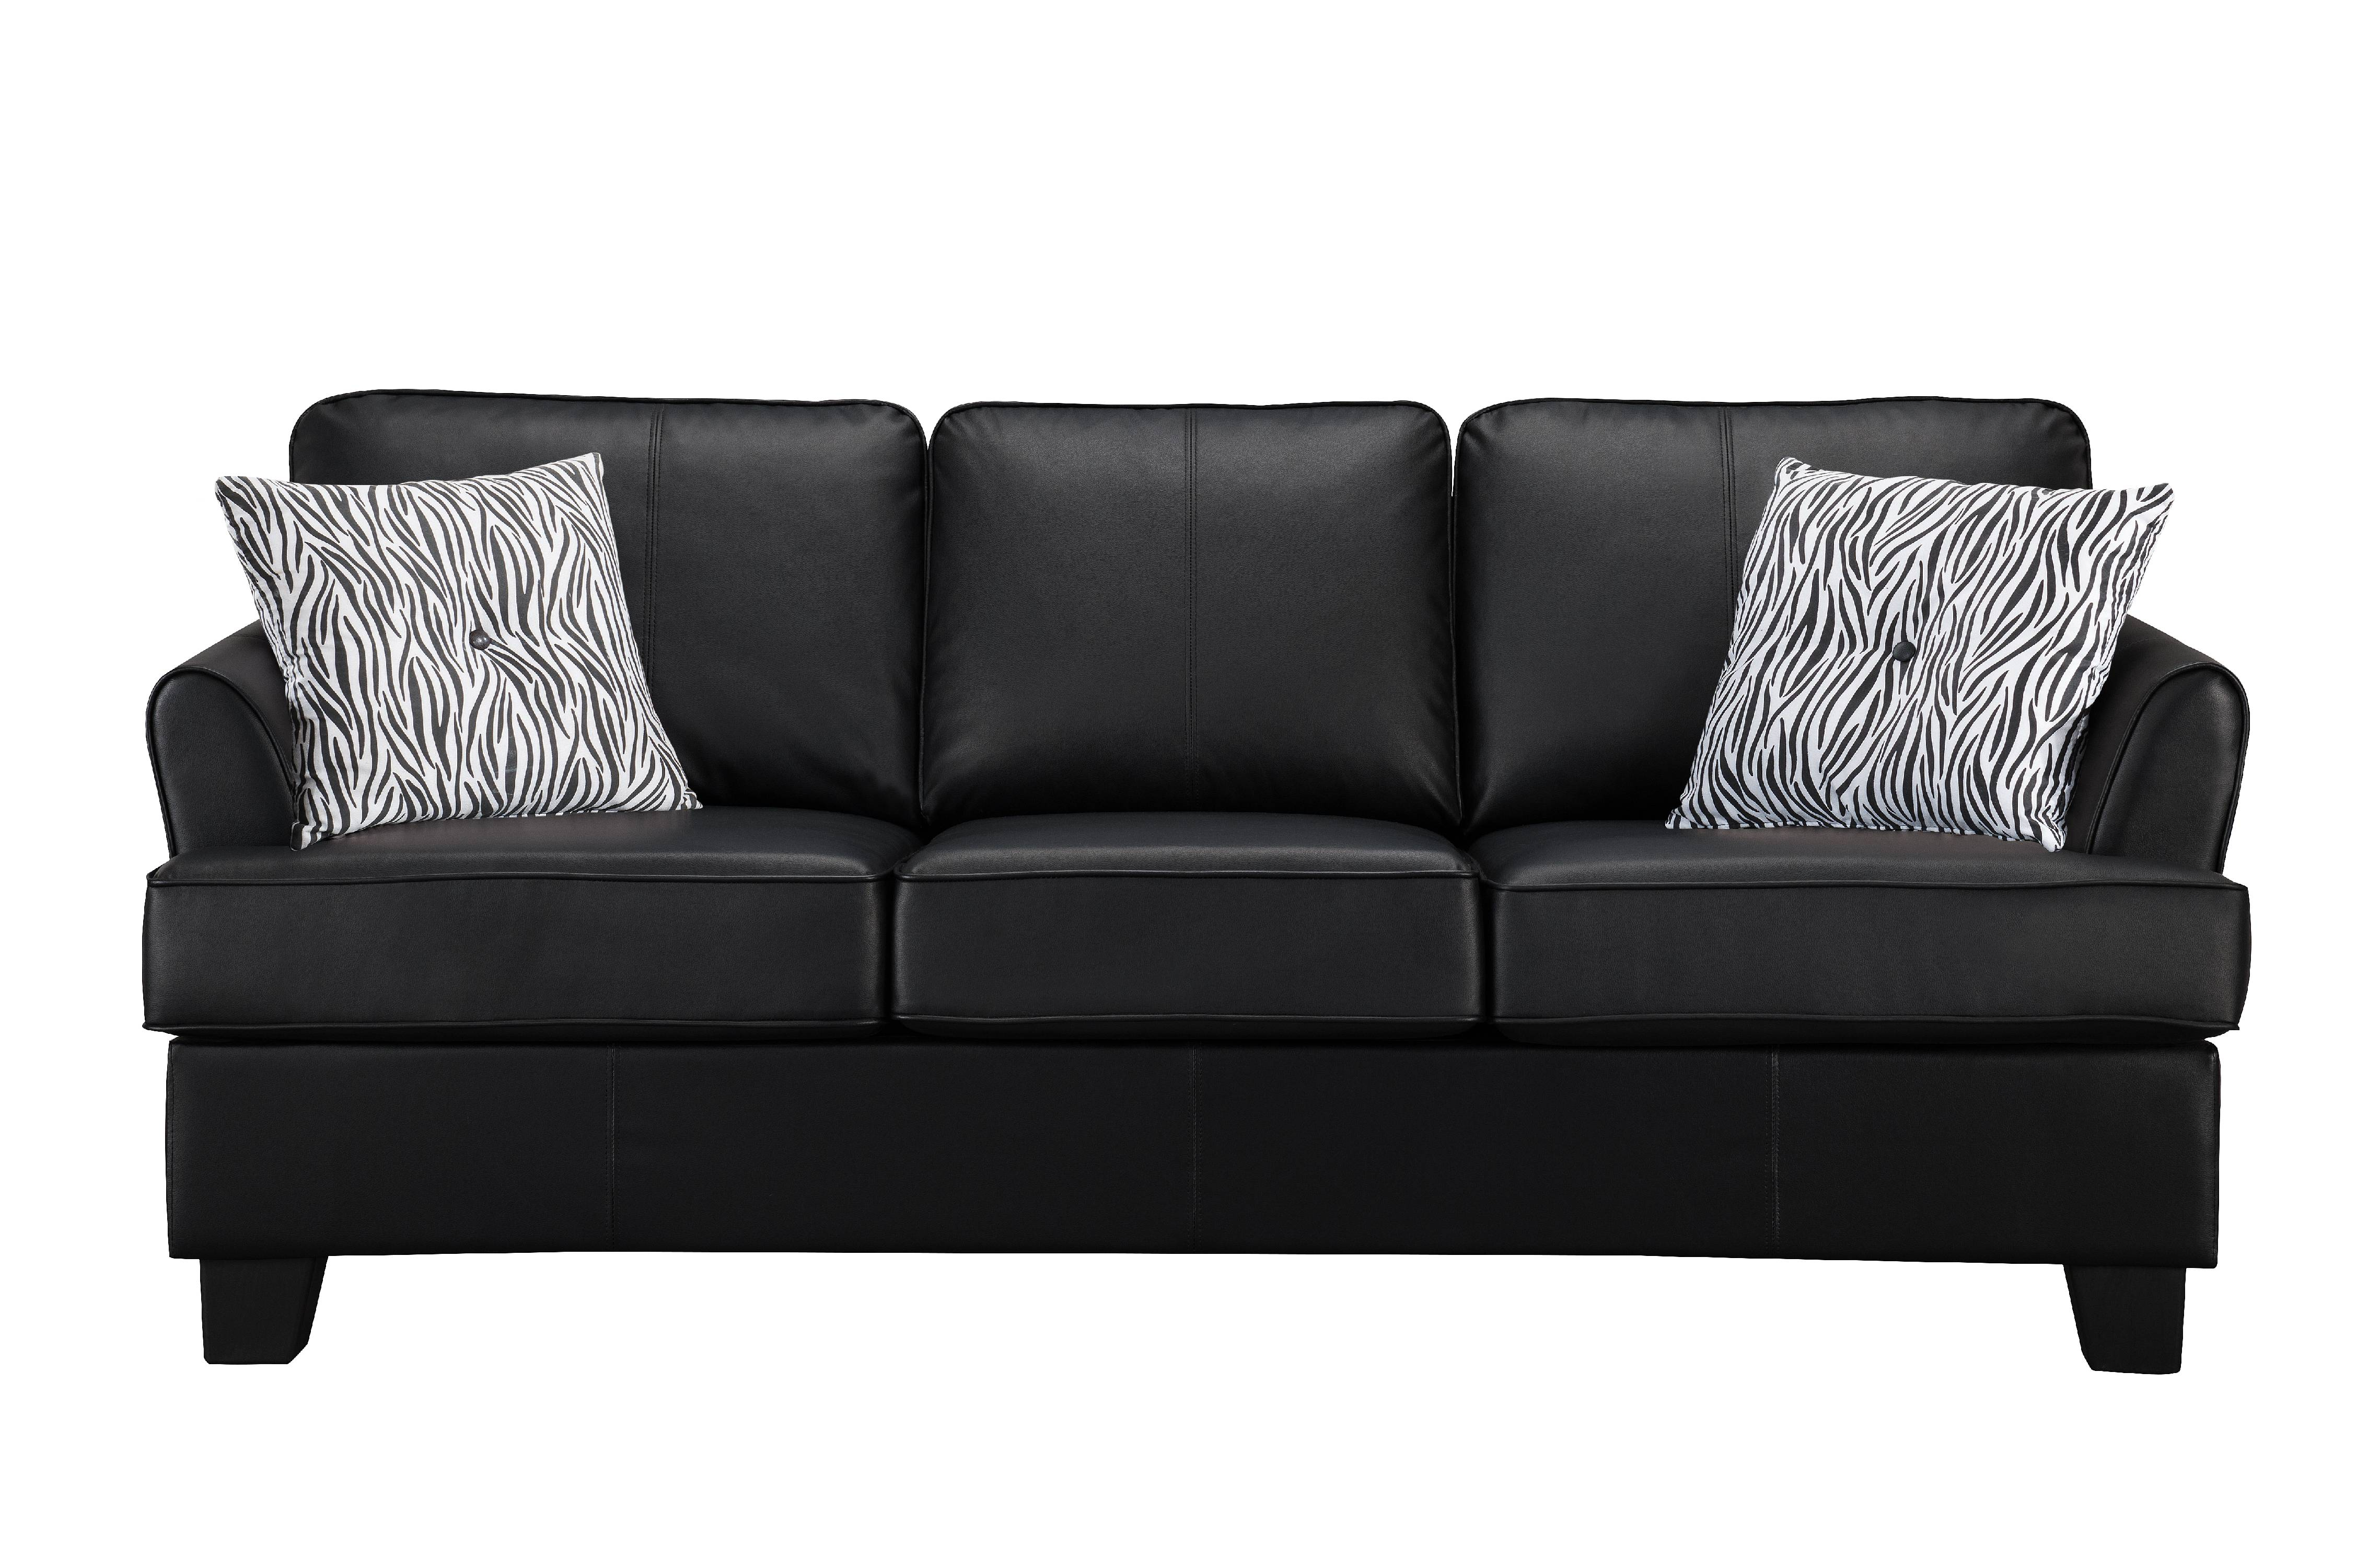 chantal queen size sleeper sofa with throw pillows black faux leather transitional